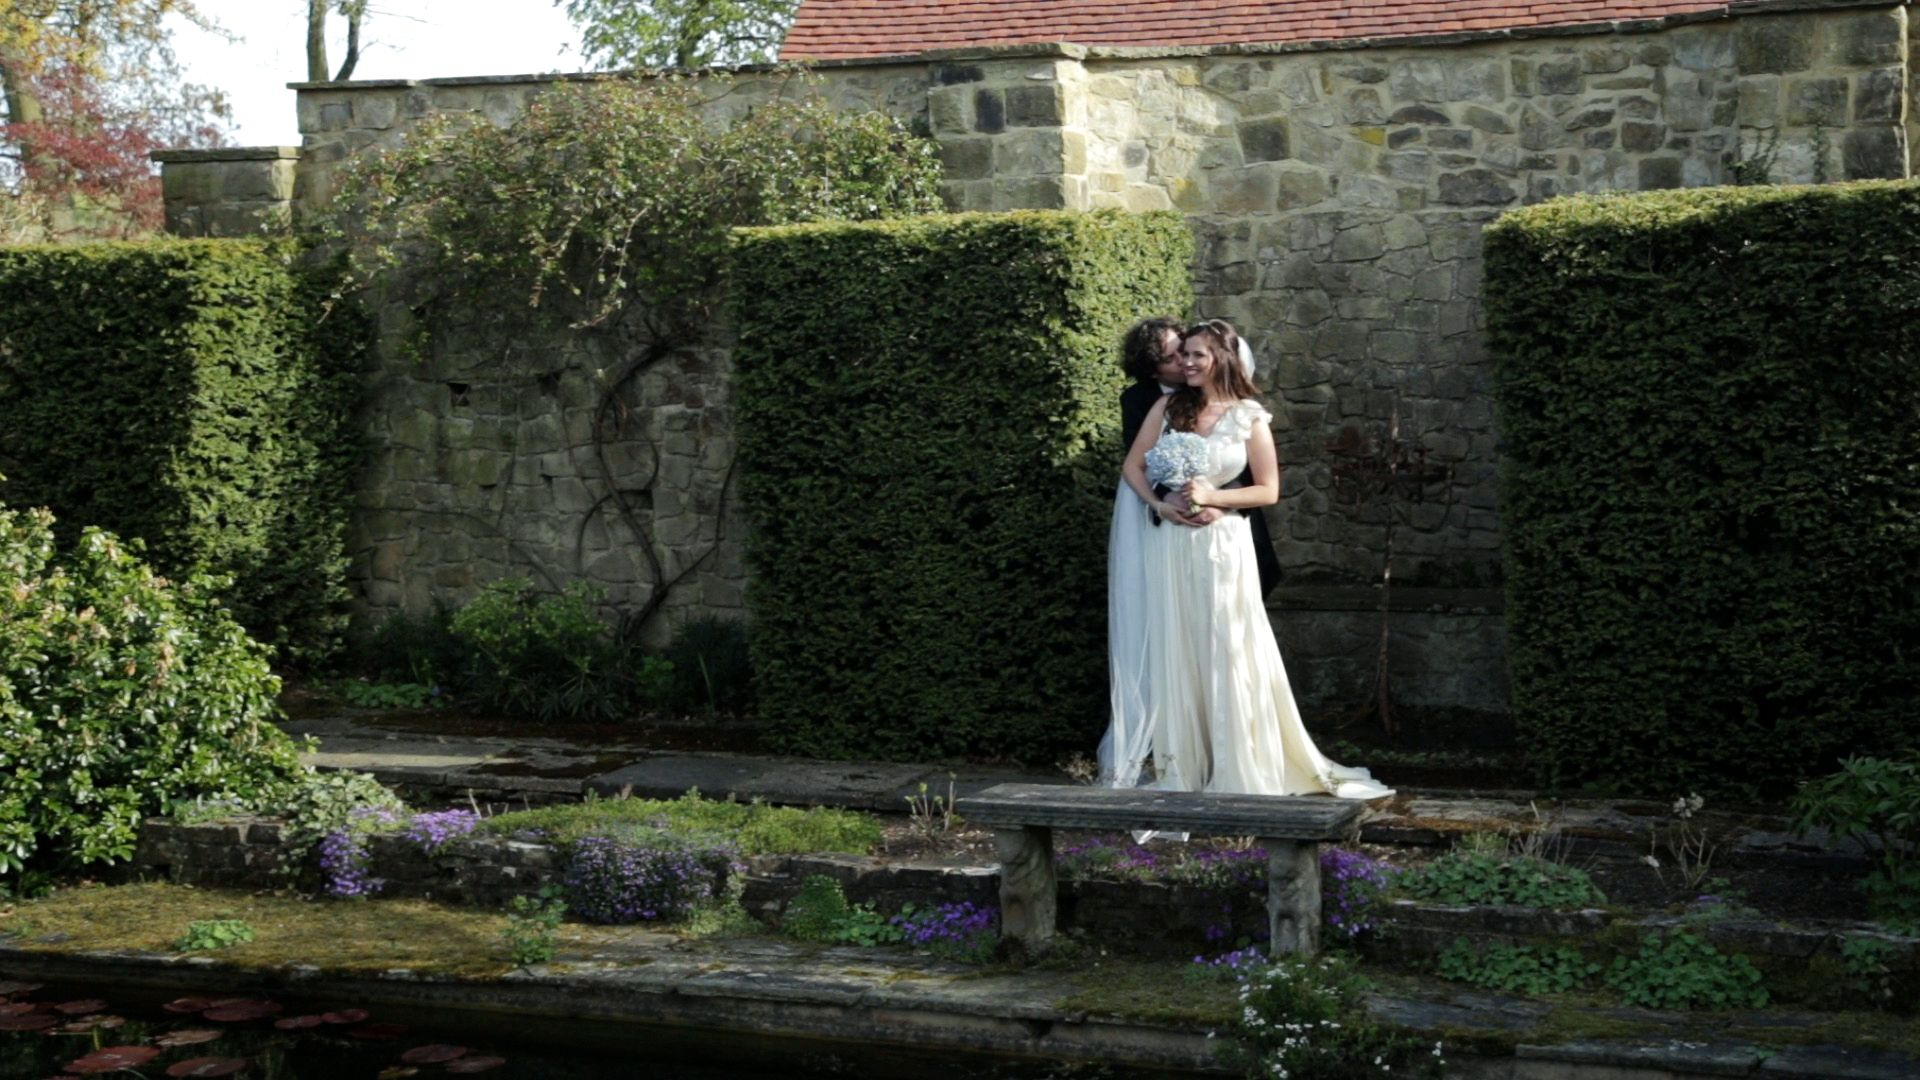 Young love.  Beautiful wedding moments captured by ndr films. www.ndrfilms.co.uk